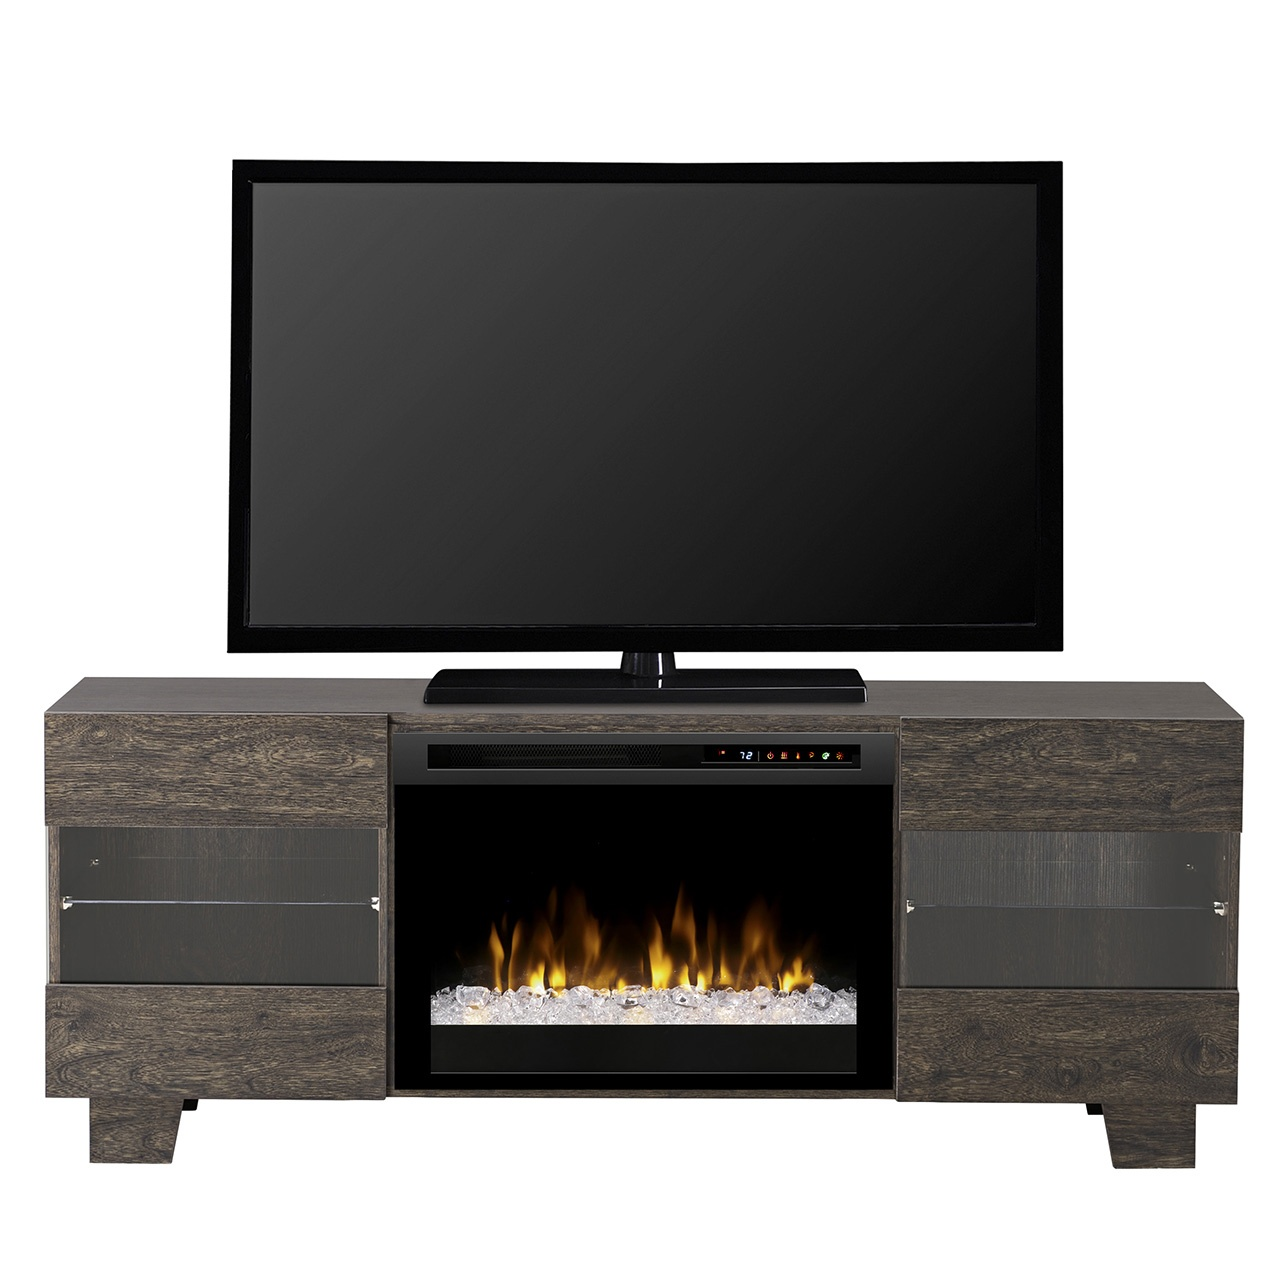 Dimplex max media console gds25g8 1651eb electric - Going to bed with embers in fireplace ...